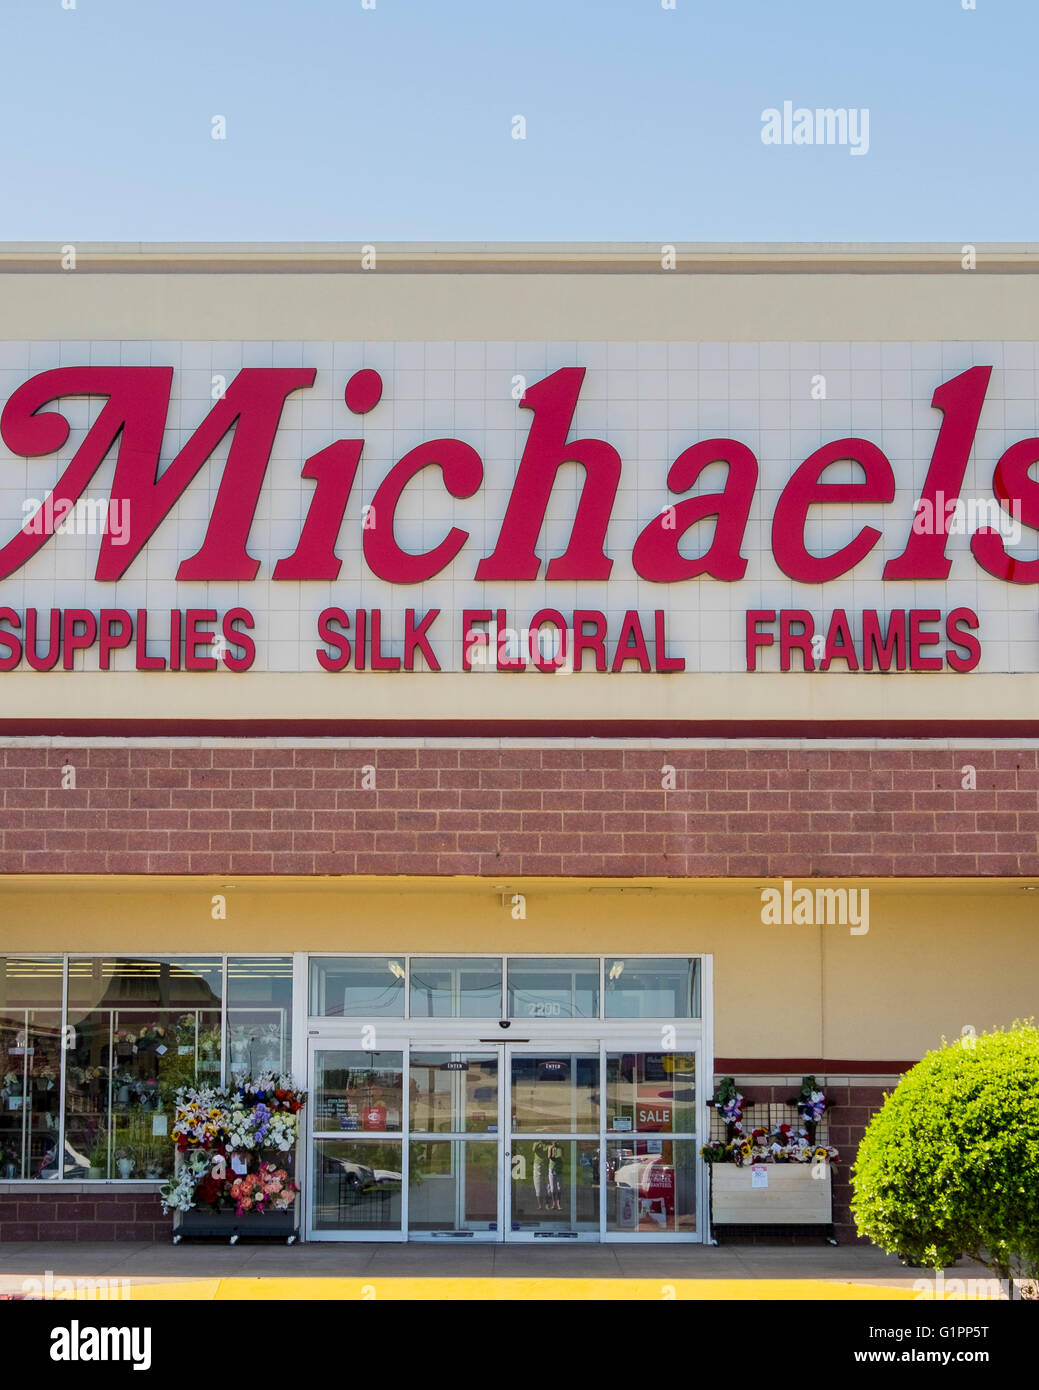 The Exterior Of Michaels An Arts And Crafts Store On Memorial Road In Oklahoma City